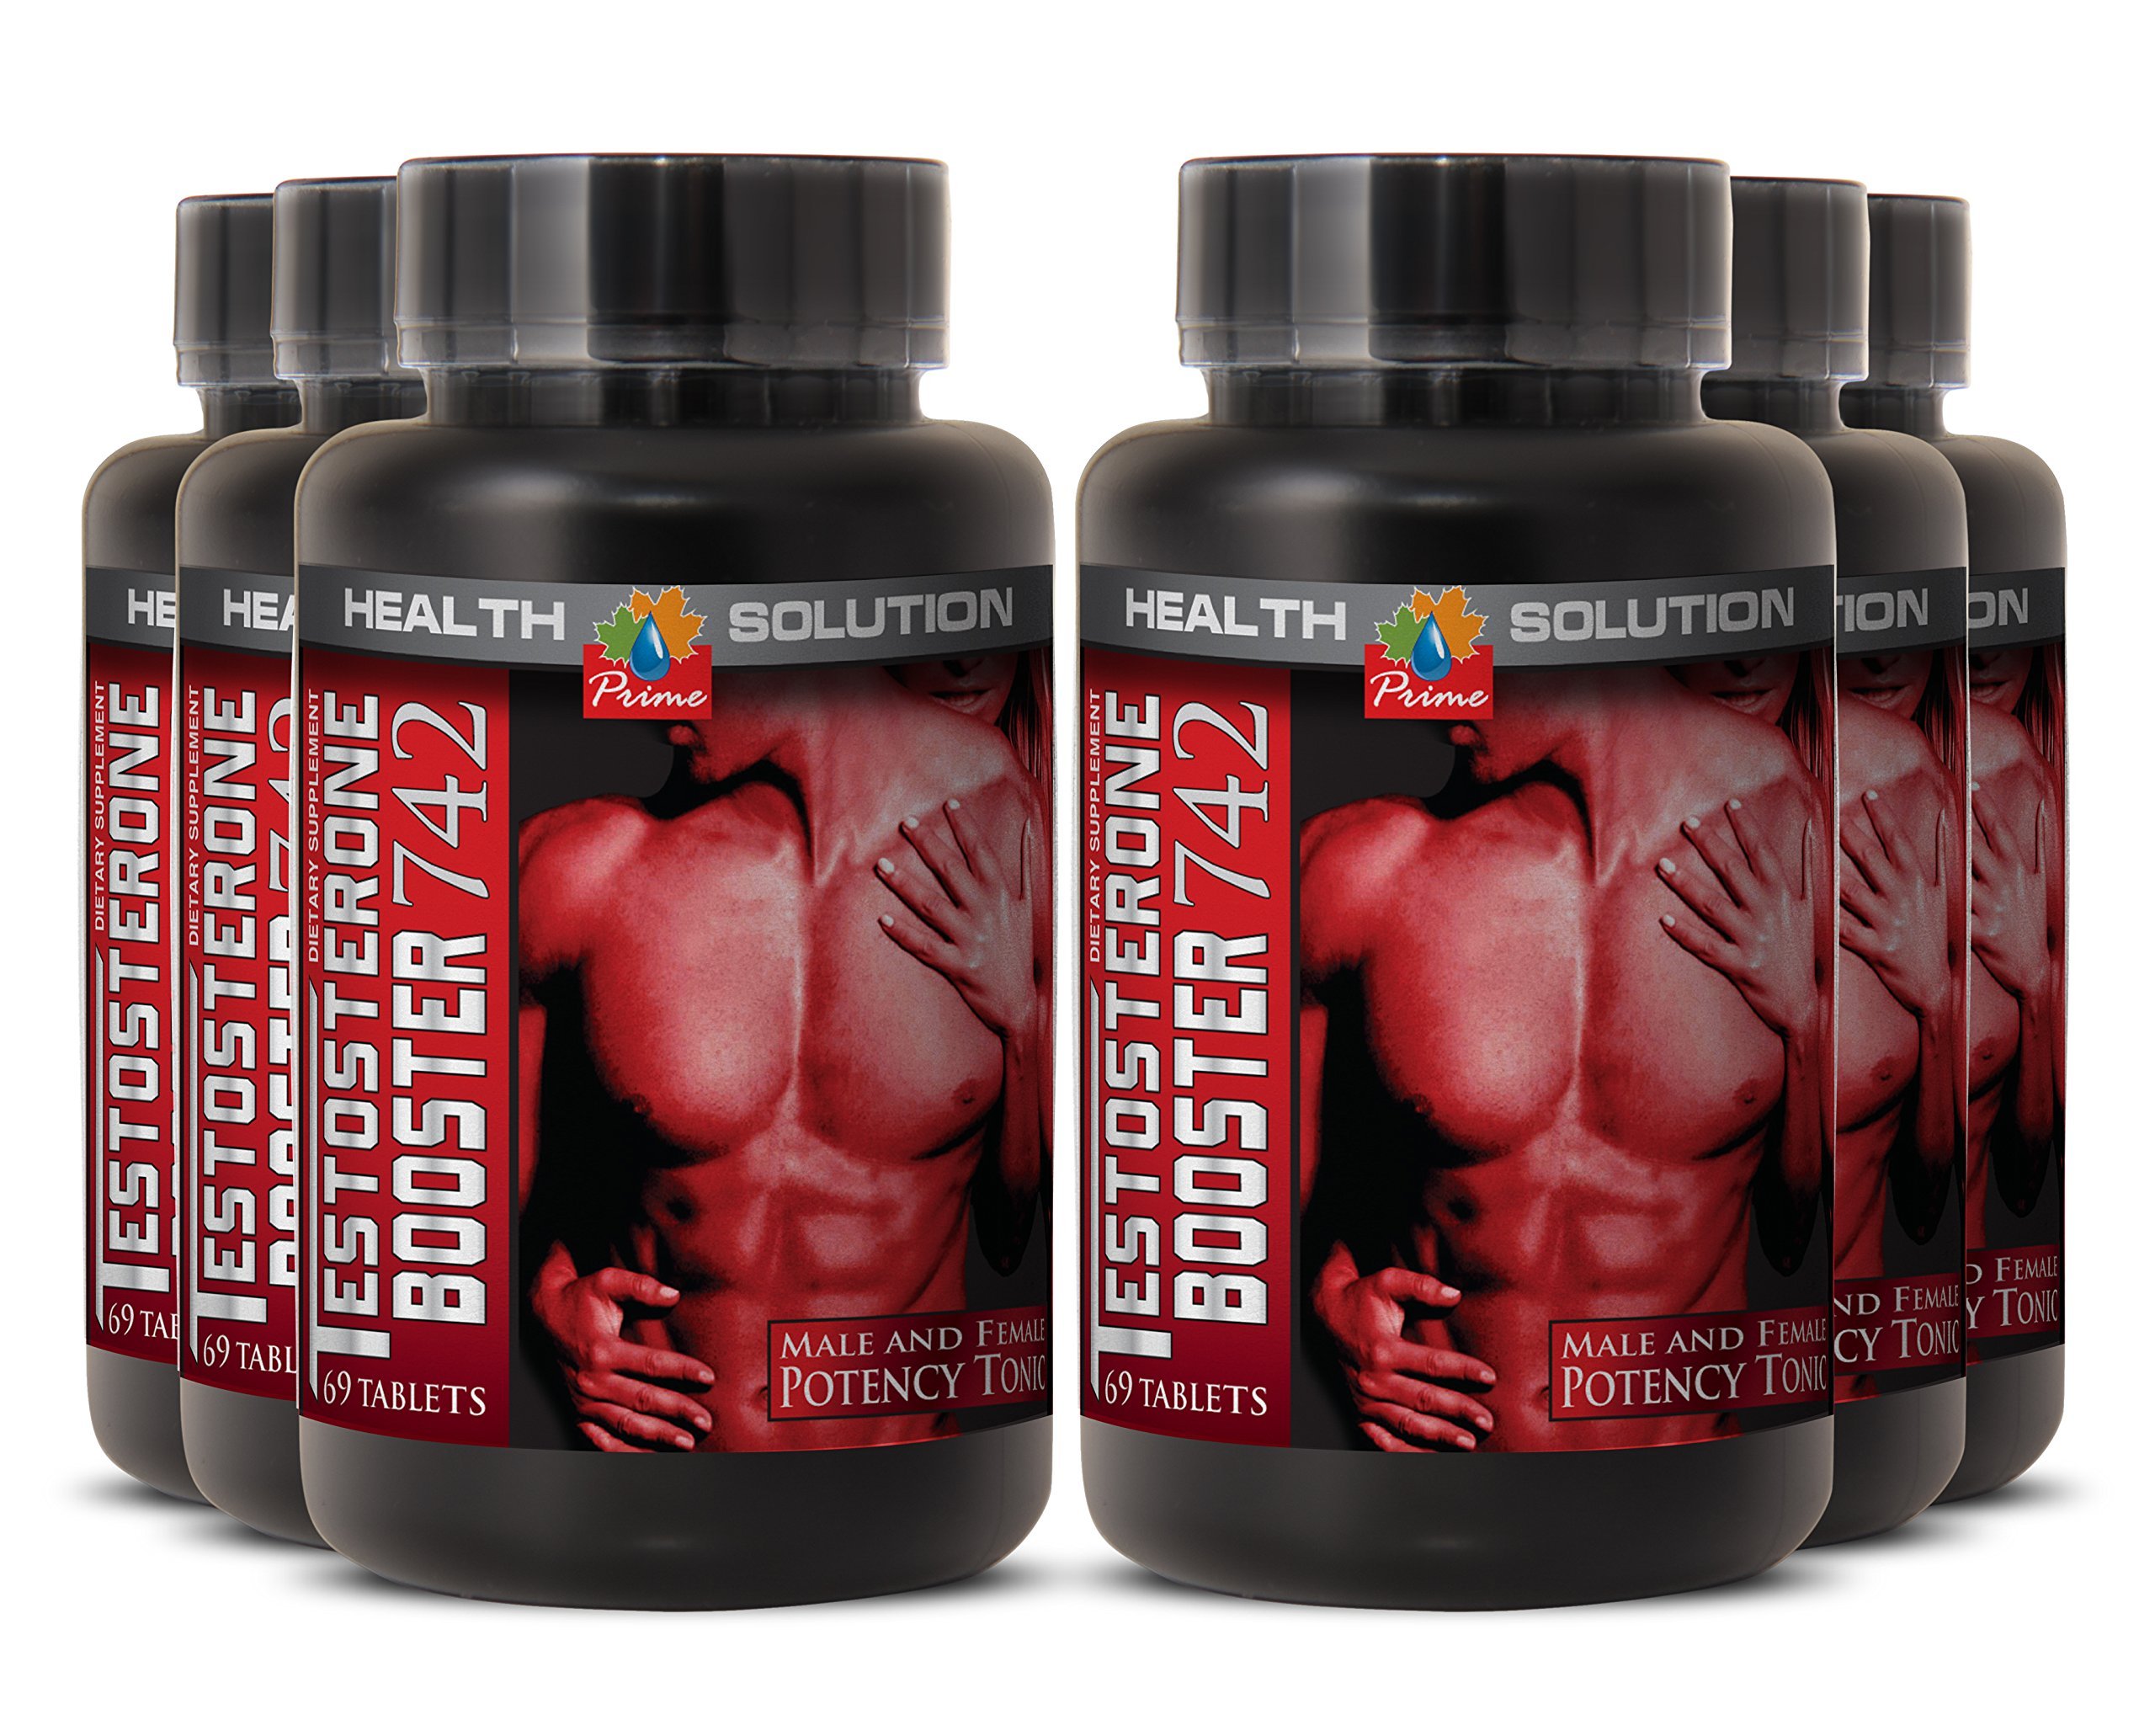 Nettle root extract powder - TESTOSTERONE BOOSTER 742MG - increase sexual function (6 Bottles)